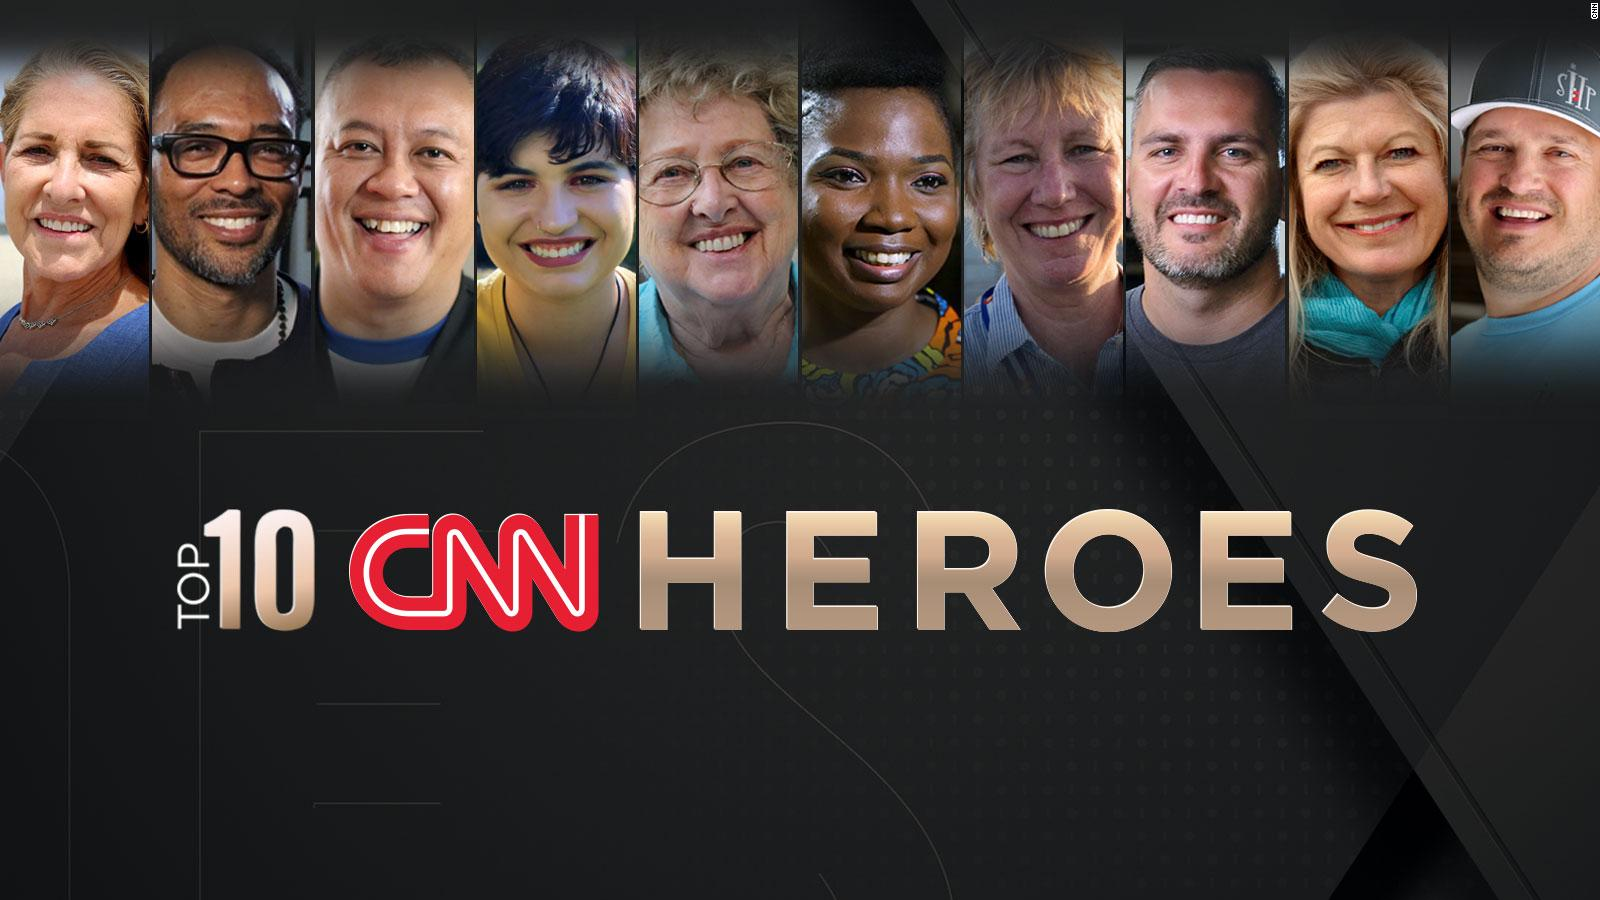 cnn reveals the top 10 cnn heroes of 2018 - cnn